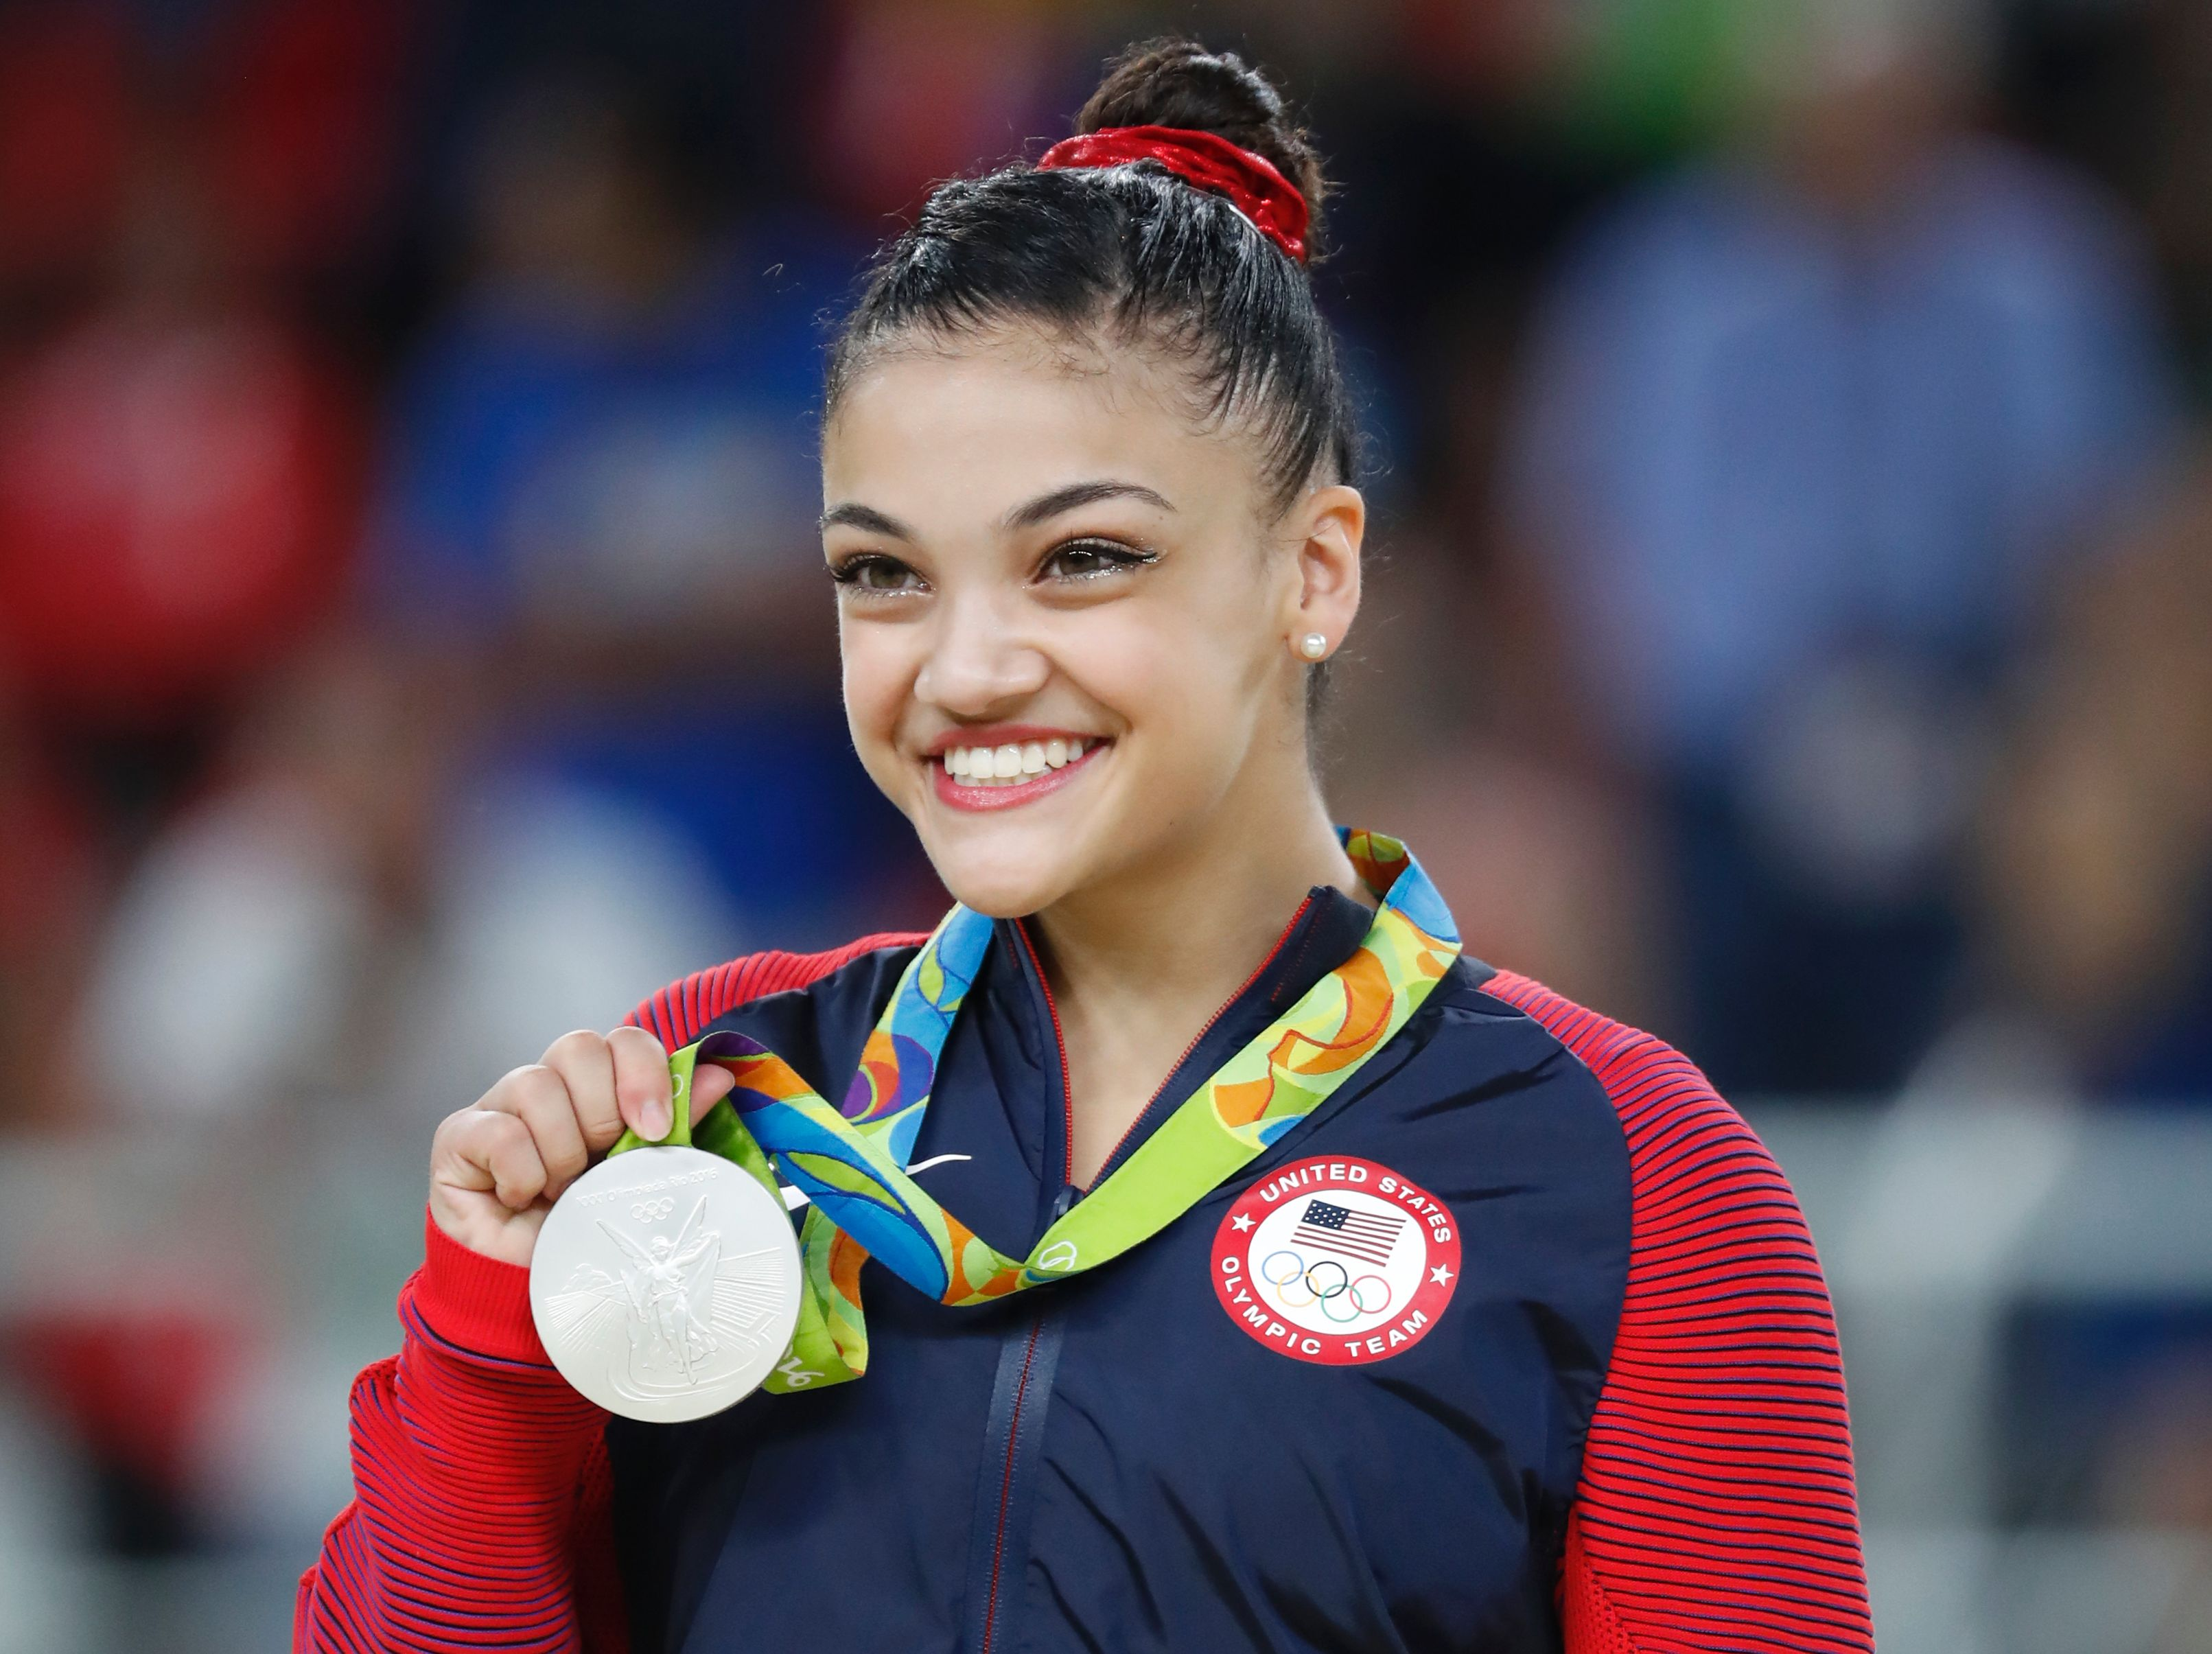 Silver medallist US gymnast Lauren Hernandez celebrates on the podium of the women's balance beam event final of the Artistic Gymnastics at the Olympic Arena during the Rio 2016 Olympic Games in Rio de Janeiro on August 15, 2016.